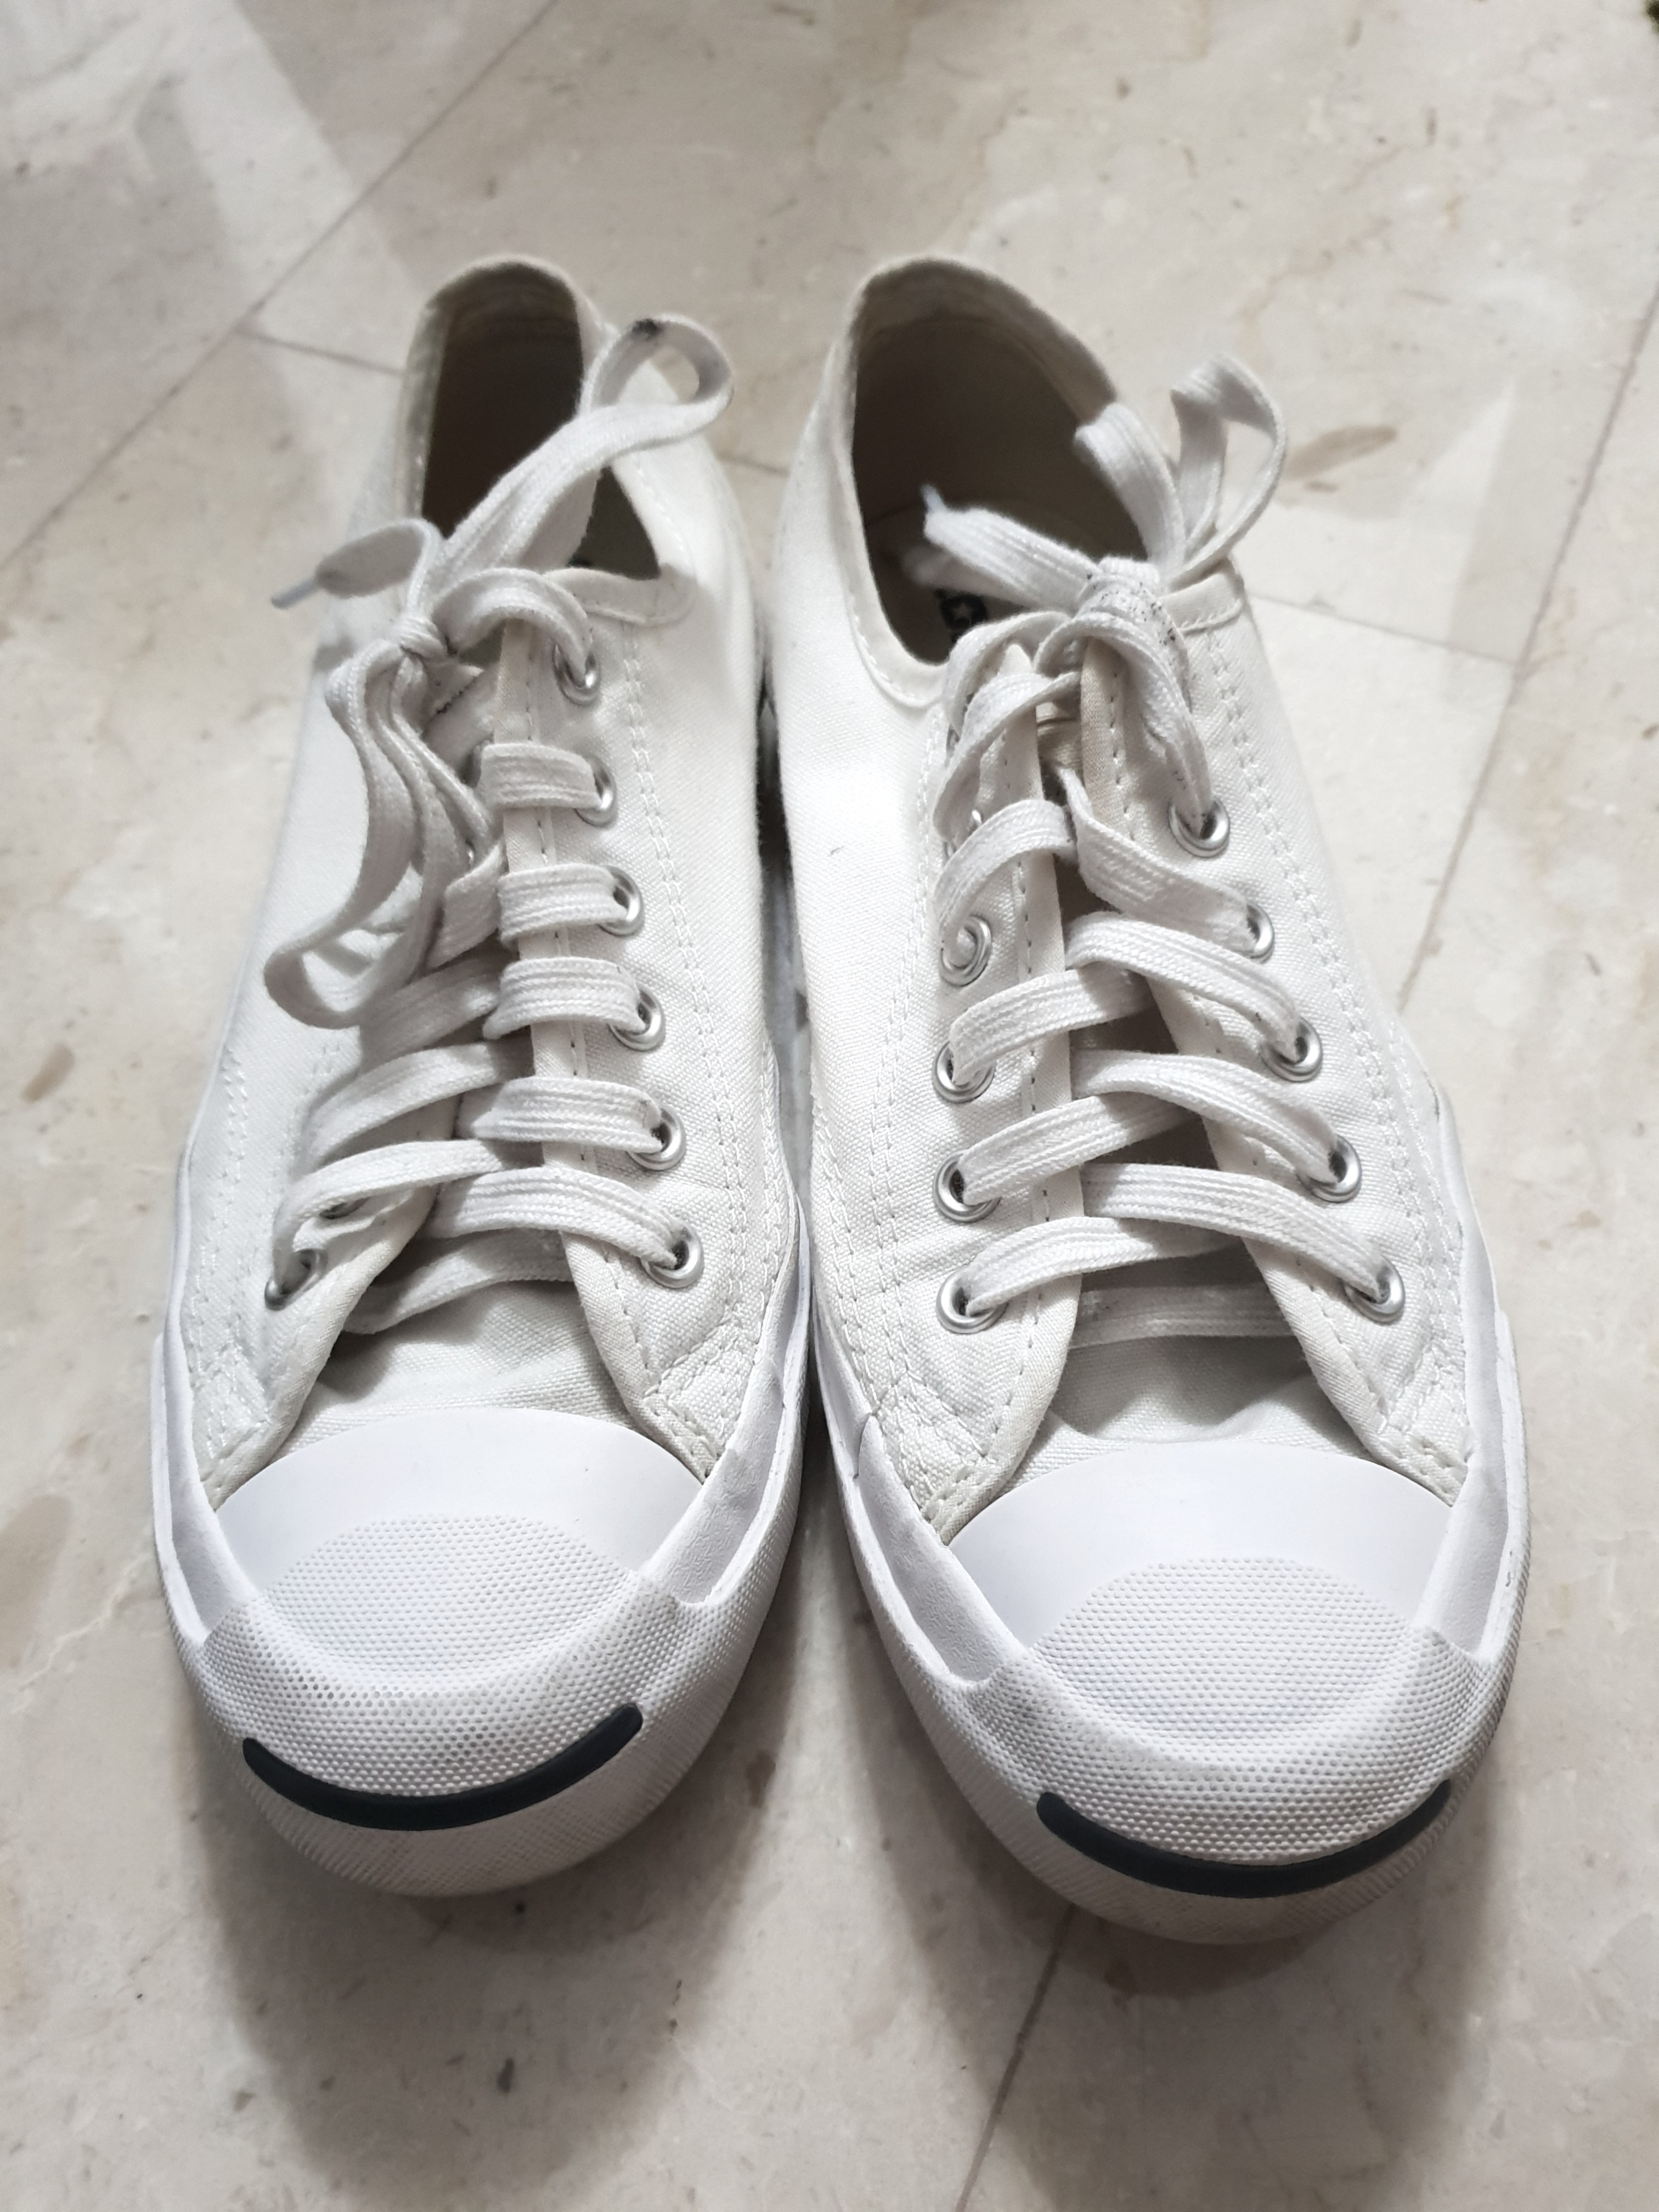 0a1f5d532624 Home · Women s Fashion · Shoes · Sneakers. photo photo photo photo photo